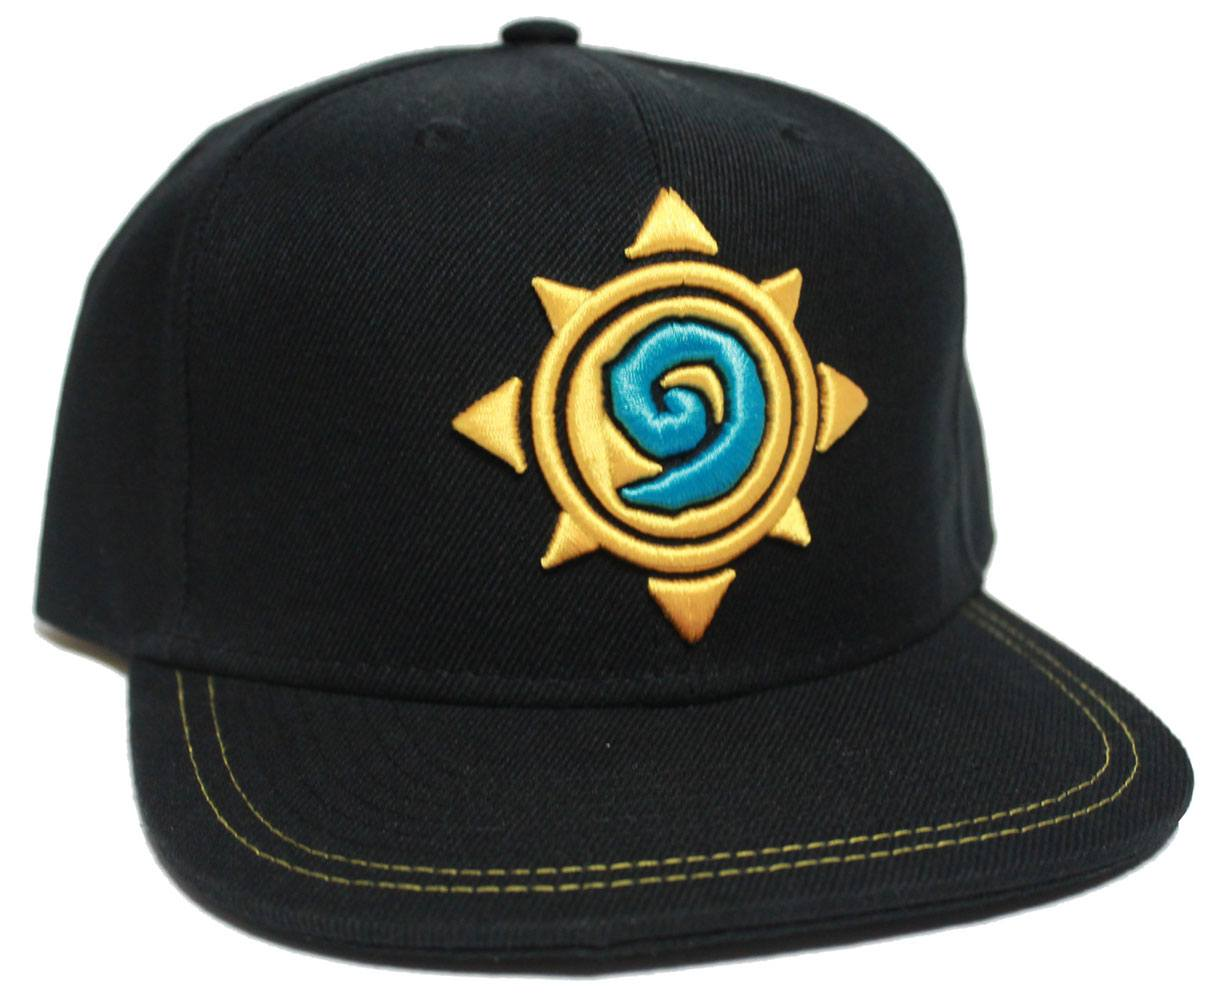 Čiapka Hearthstone Adjustable Cap Hearthstone